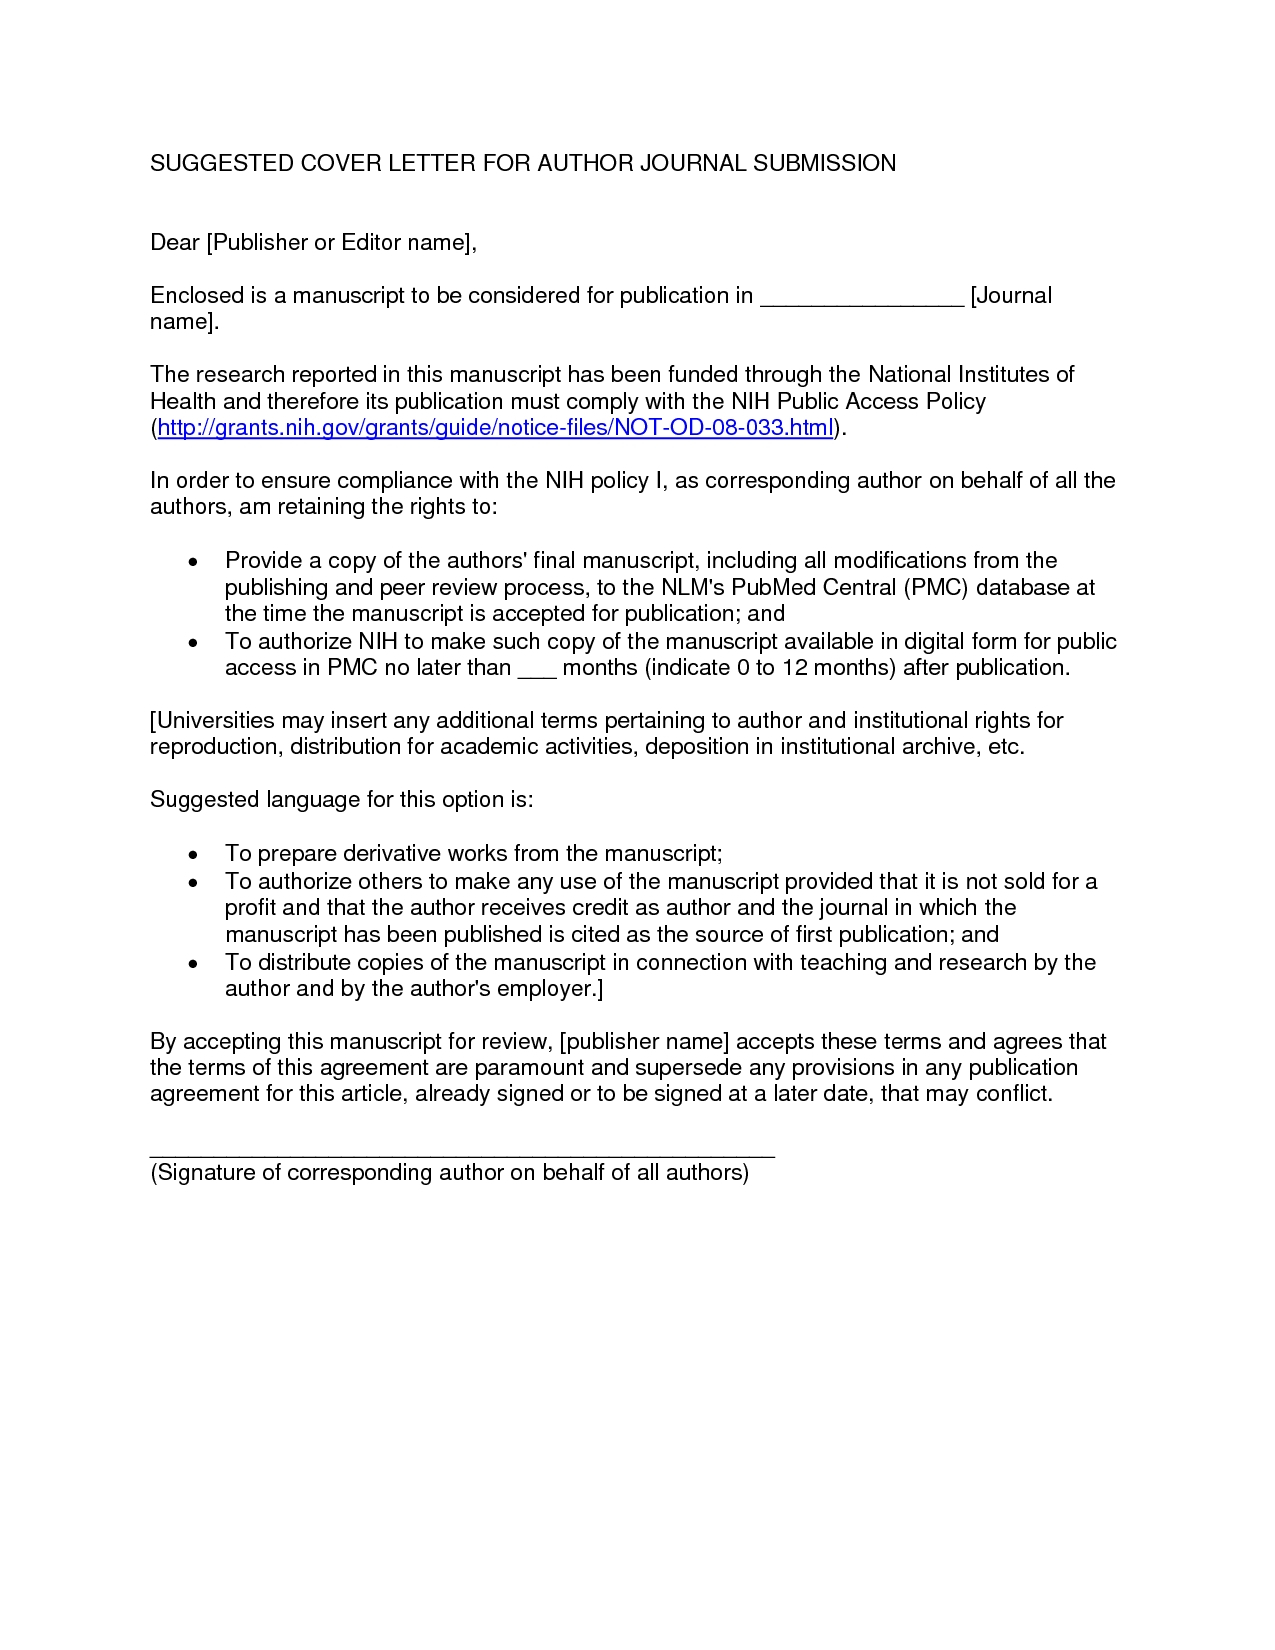 Cover Letter Template Australia - Awesome Collection Speculative Cover Letter Sample Australia with